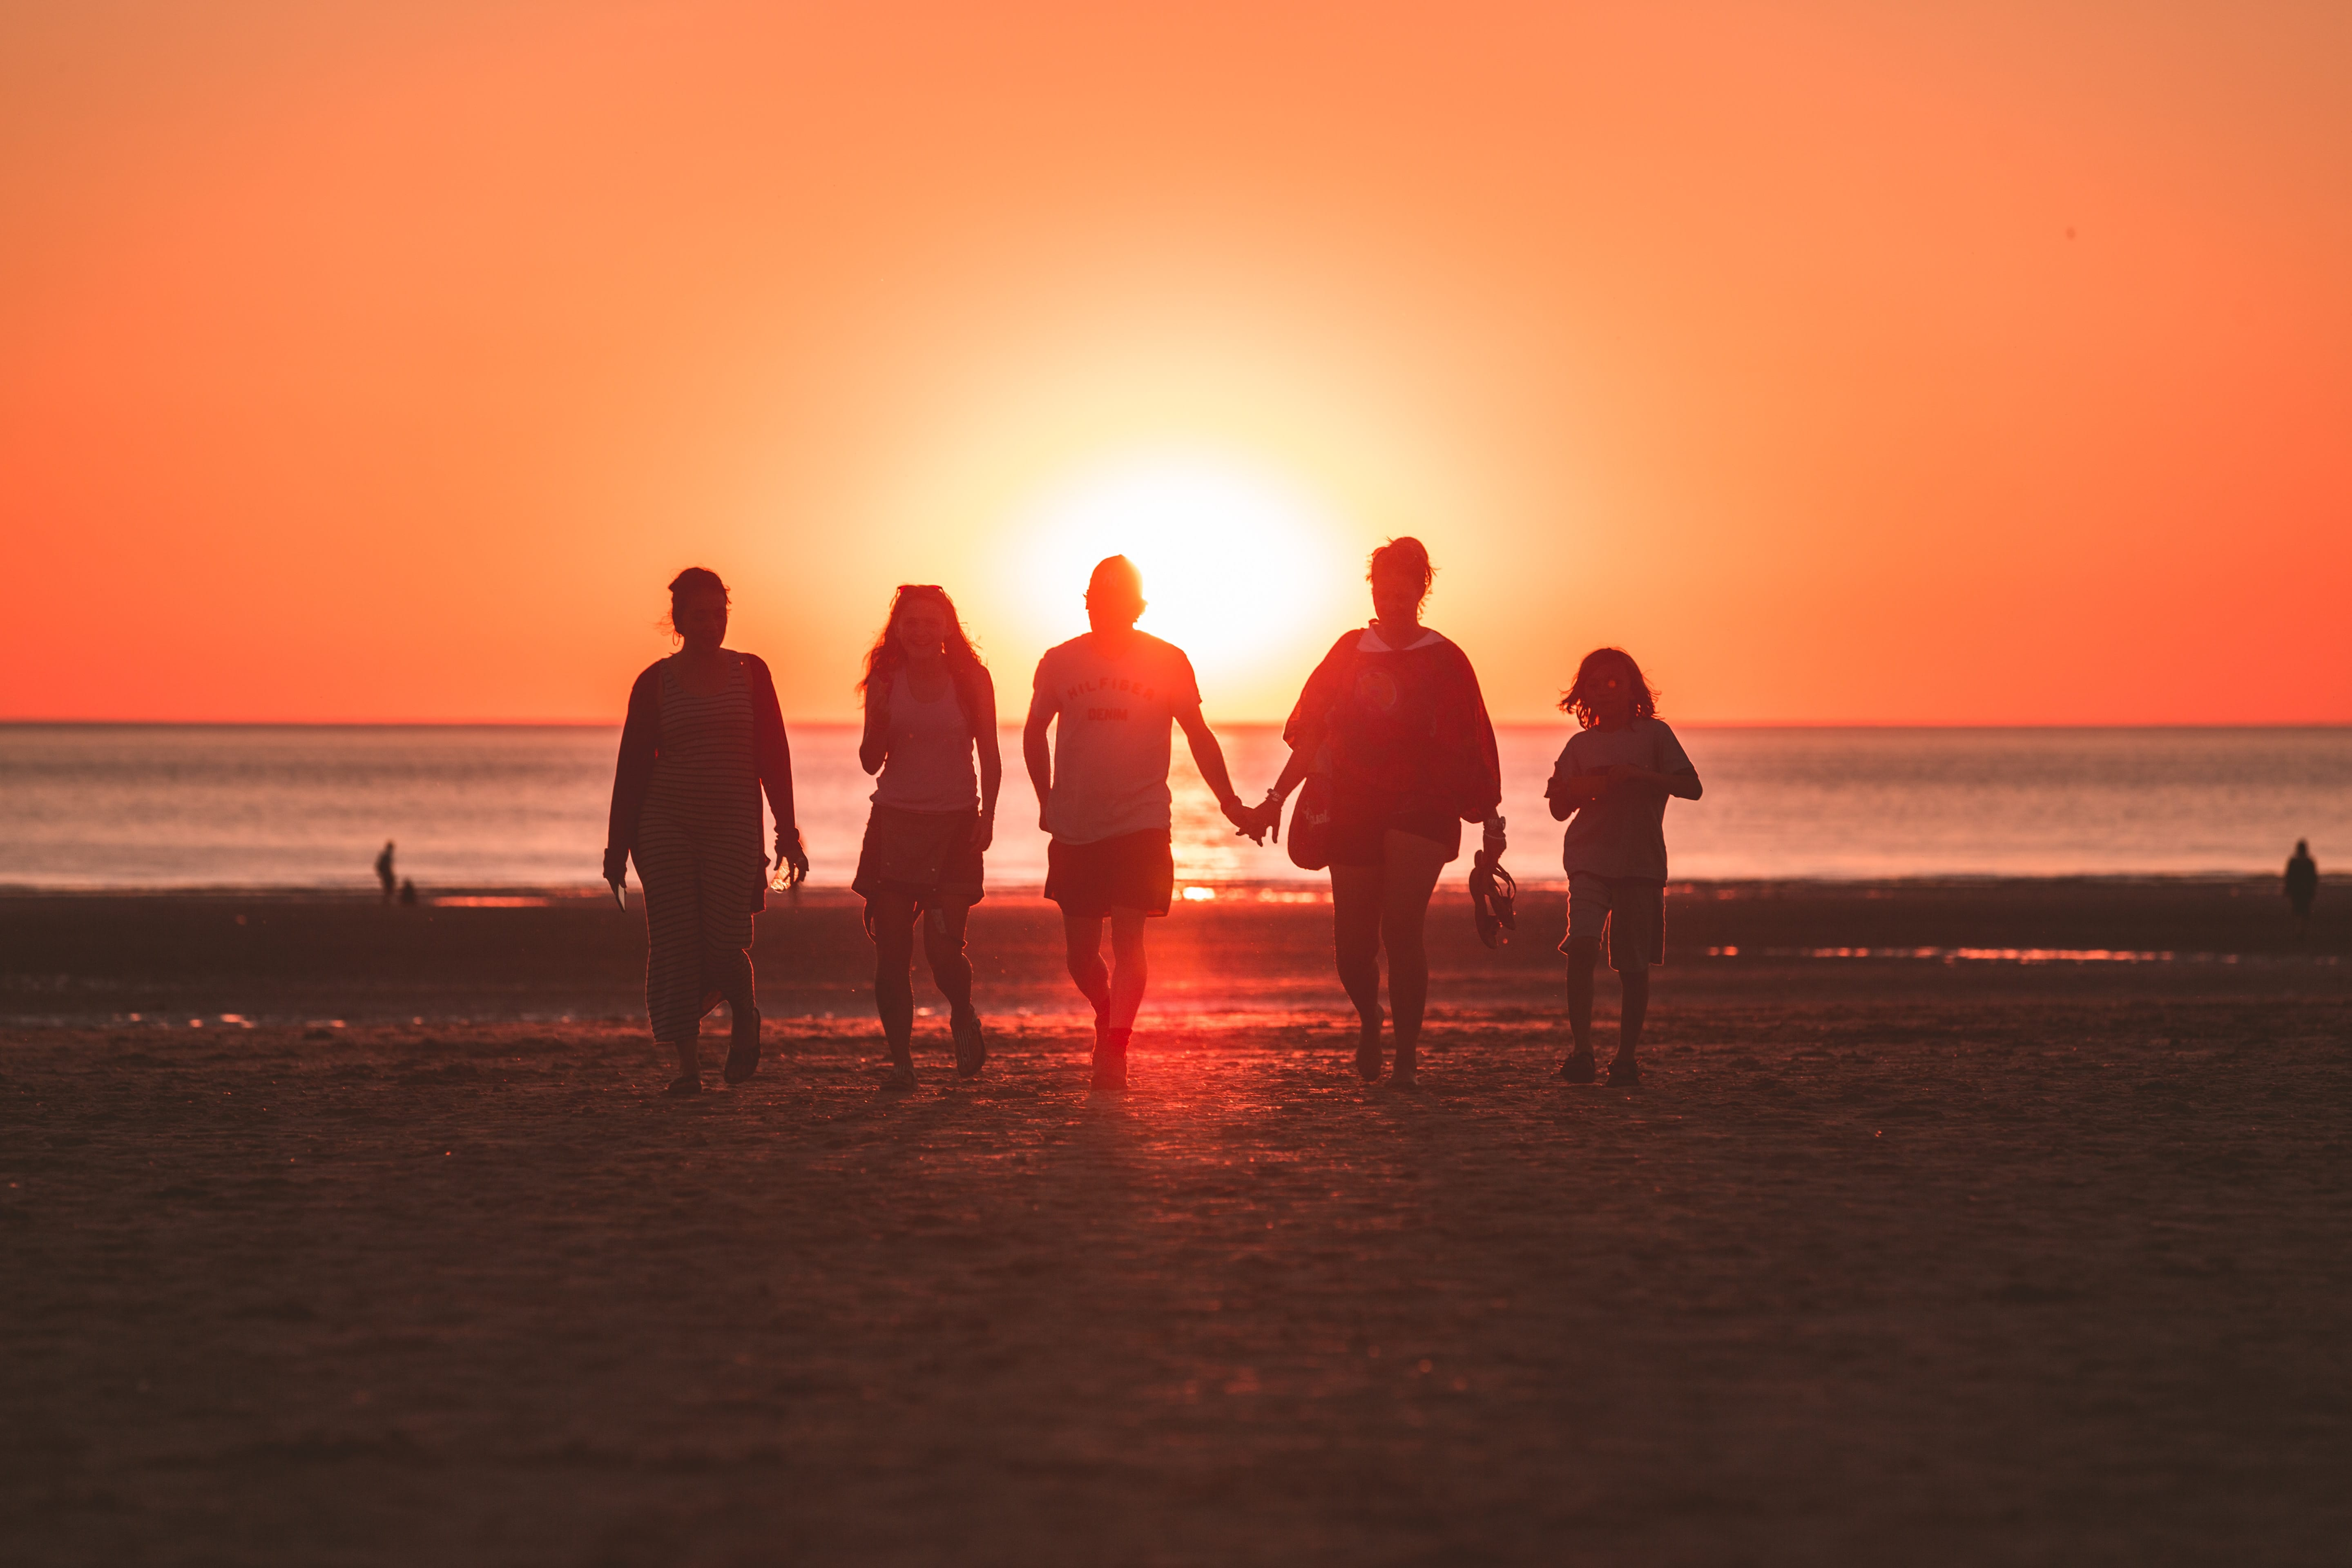 Family of five walking along beach at sunset; image by Kevin Delvecchio, via Unsplash.com.